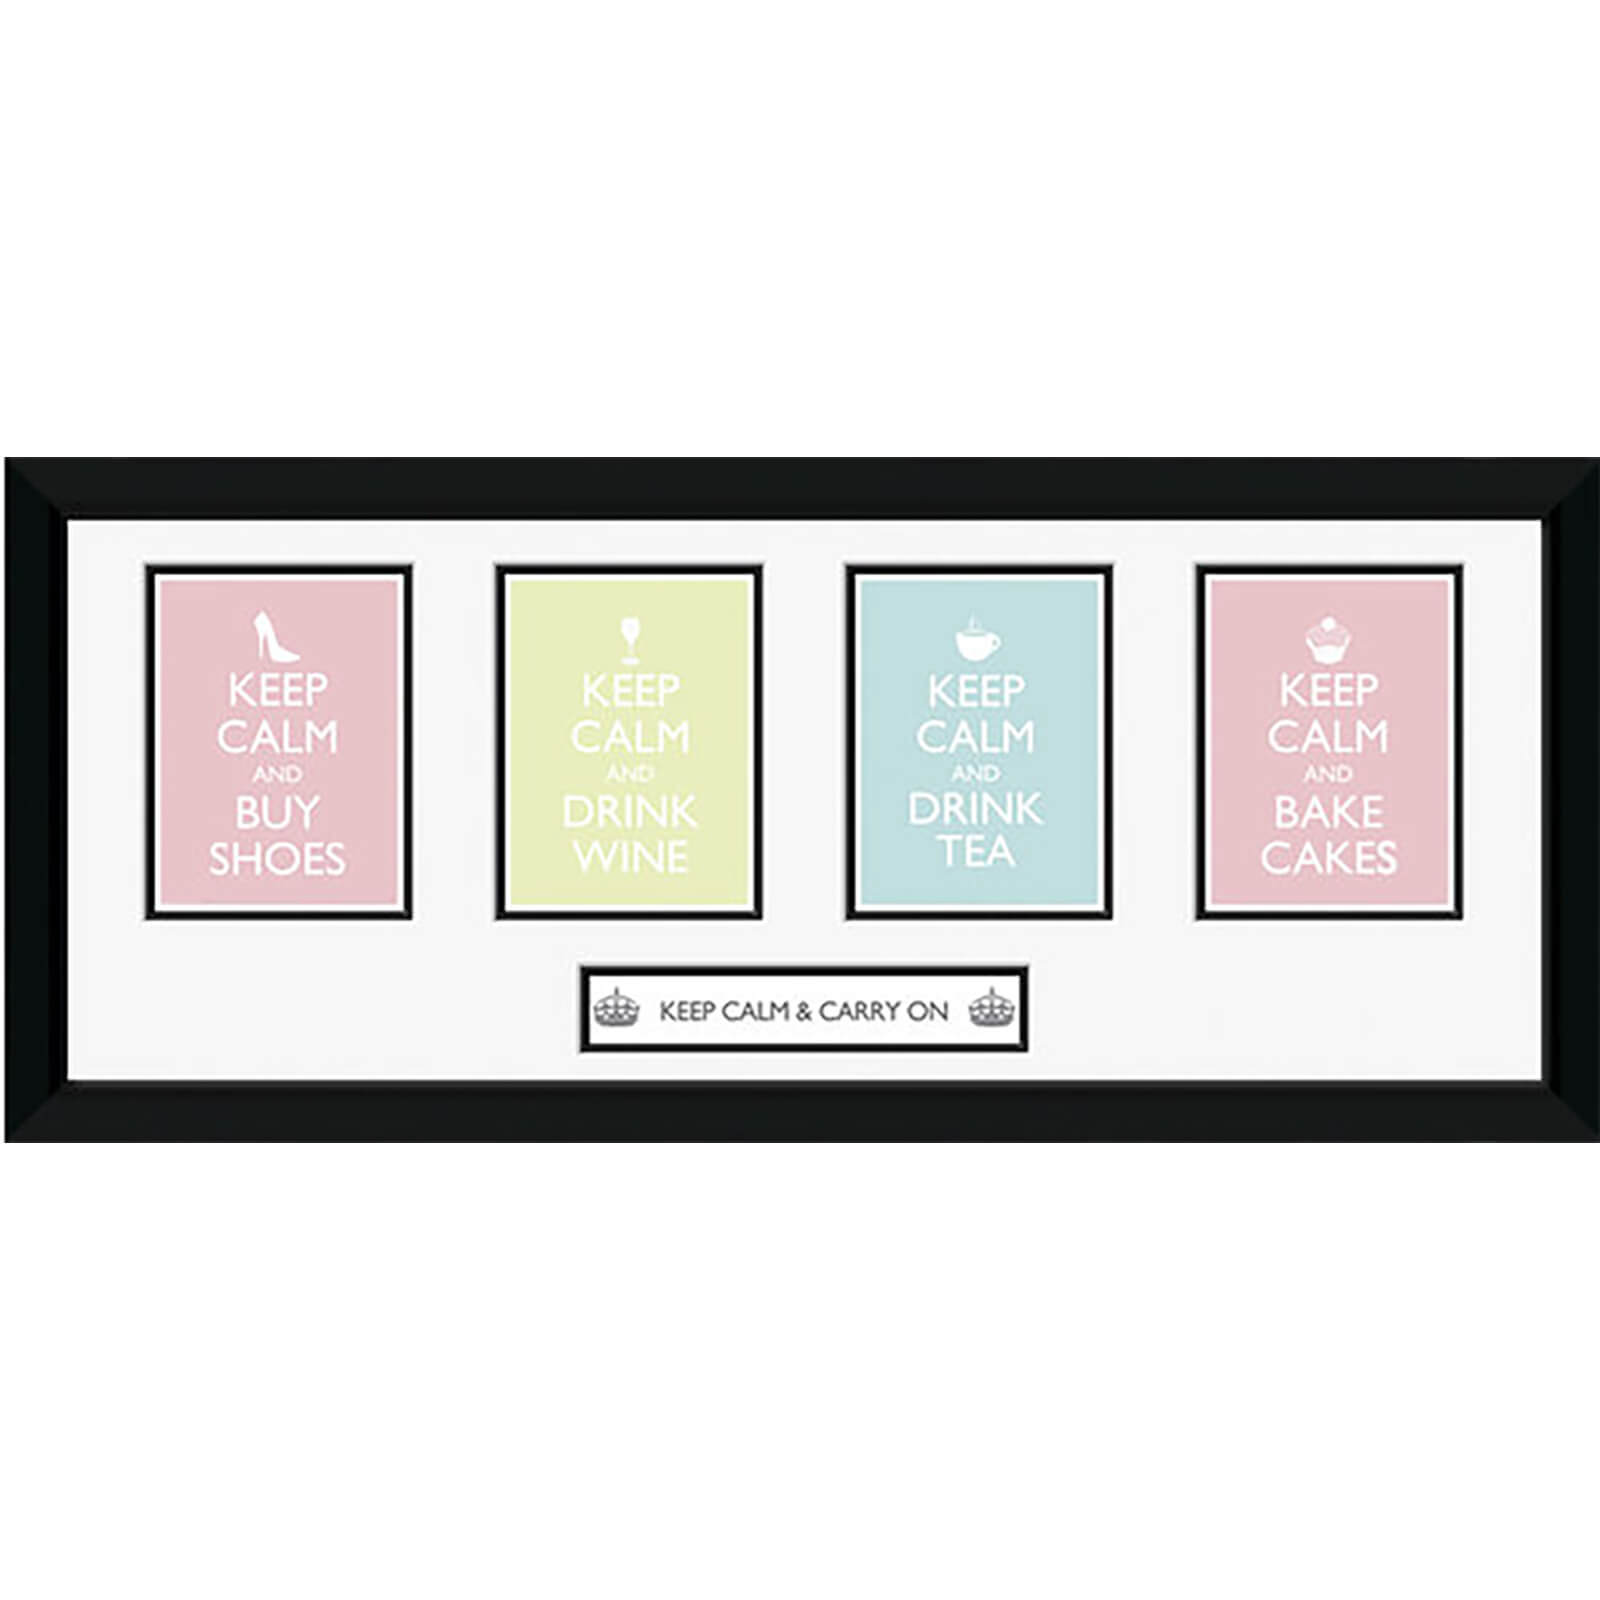 "Keep Calm Girls - 30"""" x 12"""" Framed Photographic"